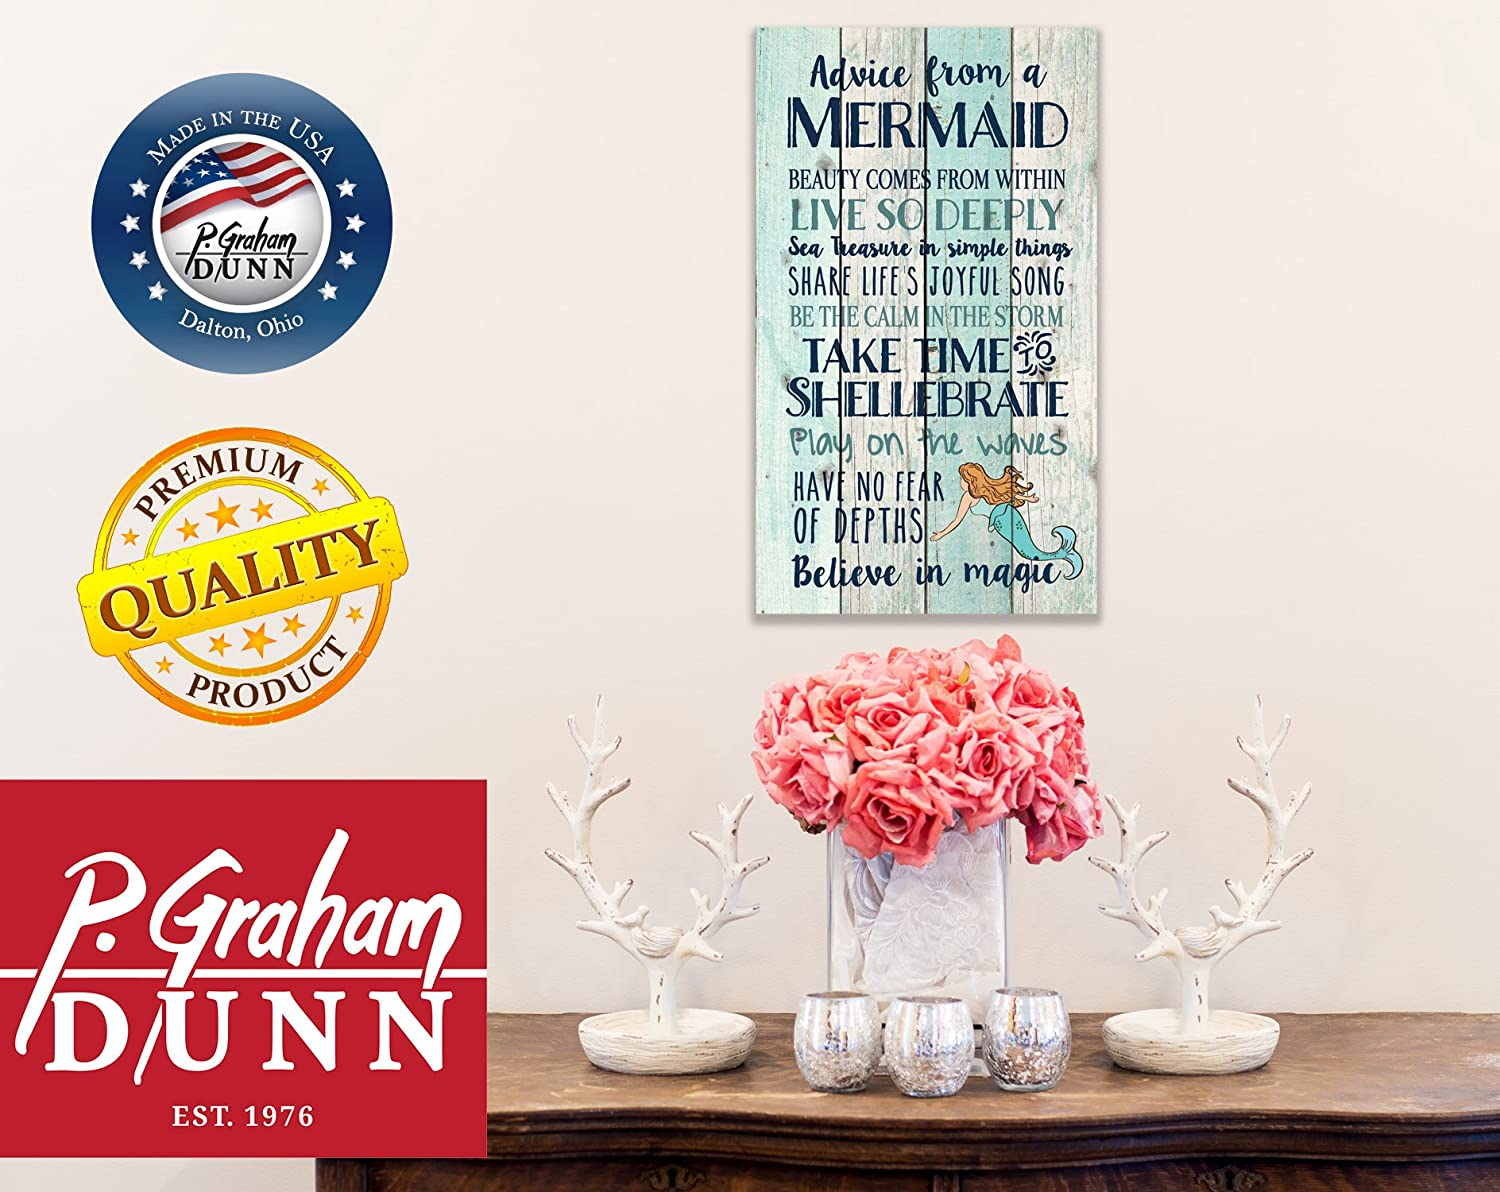 3f89ddecaf8 Amazon.com  P. GRAHAM DUNN Advice from a Mermaid Believe in Magic 24 x 14  Wood Pallet Wall Art Sign Plaque  Home   Kitchen